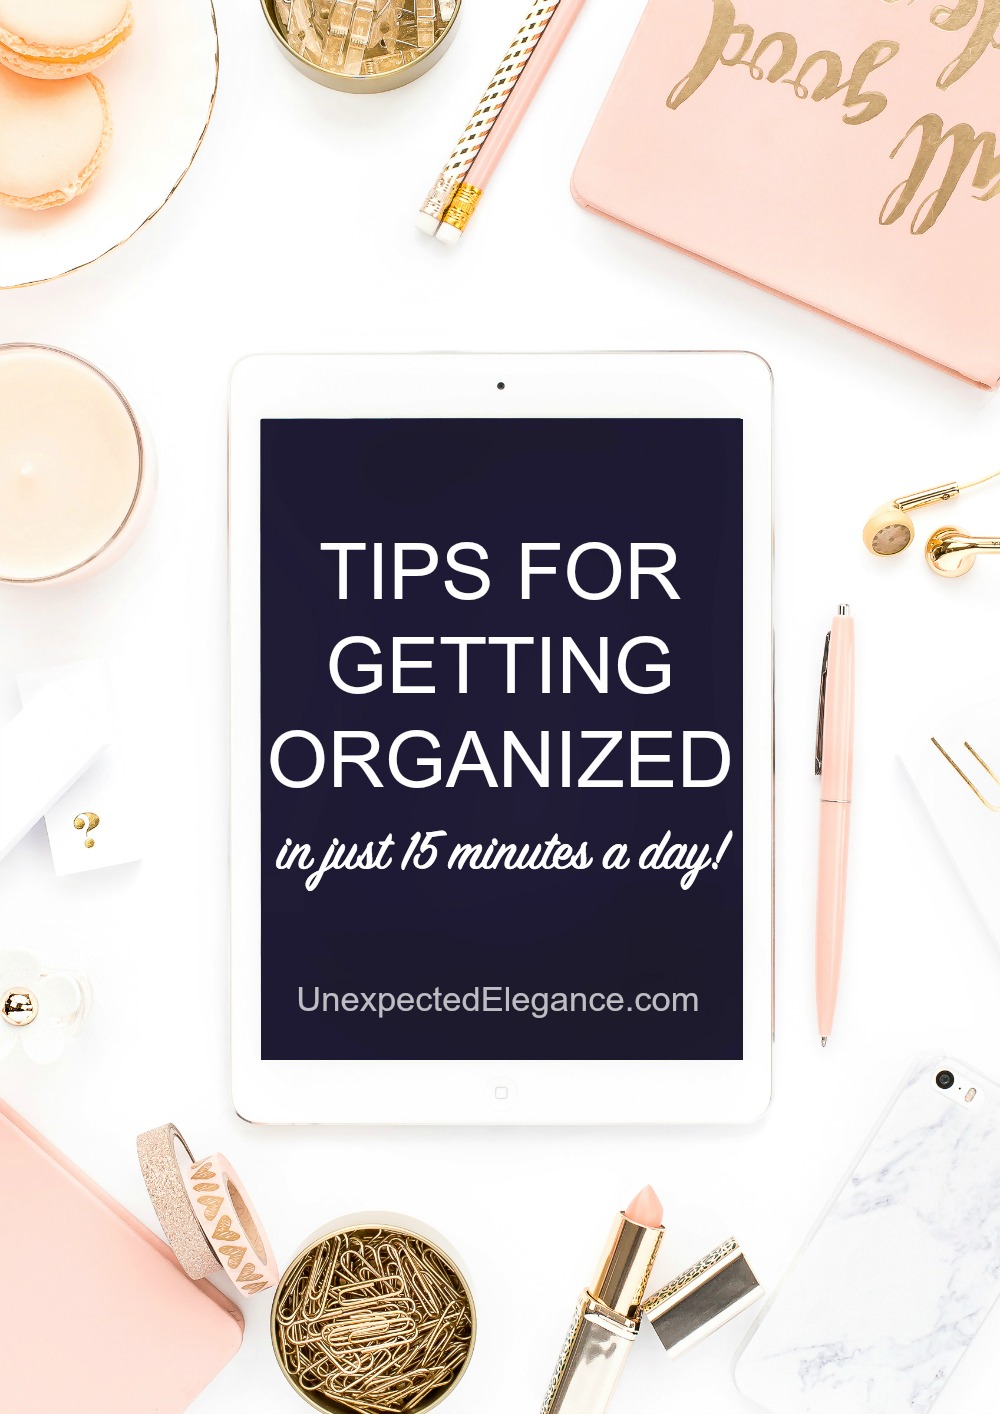 Get tips for getting organized this year and also get a FREE ebook for doing it in just 15 minutes a day!!